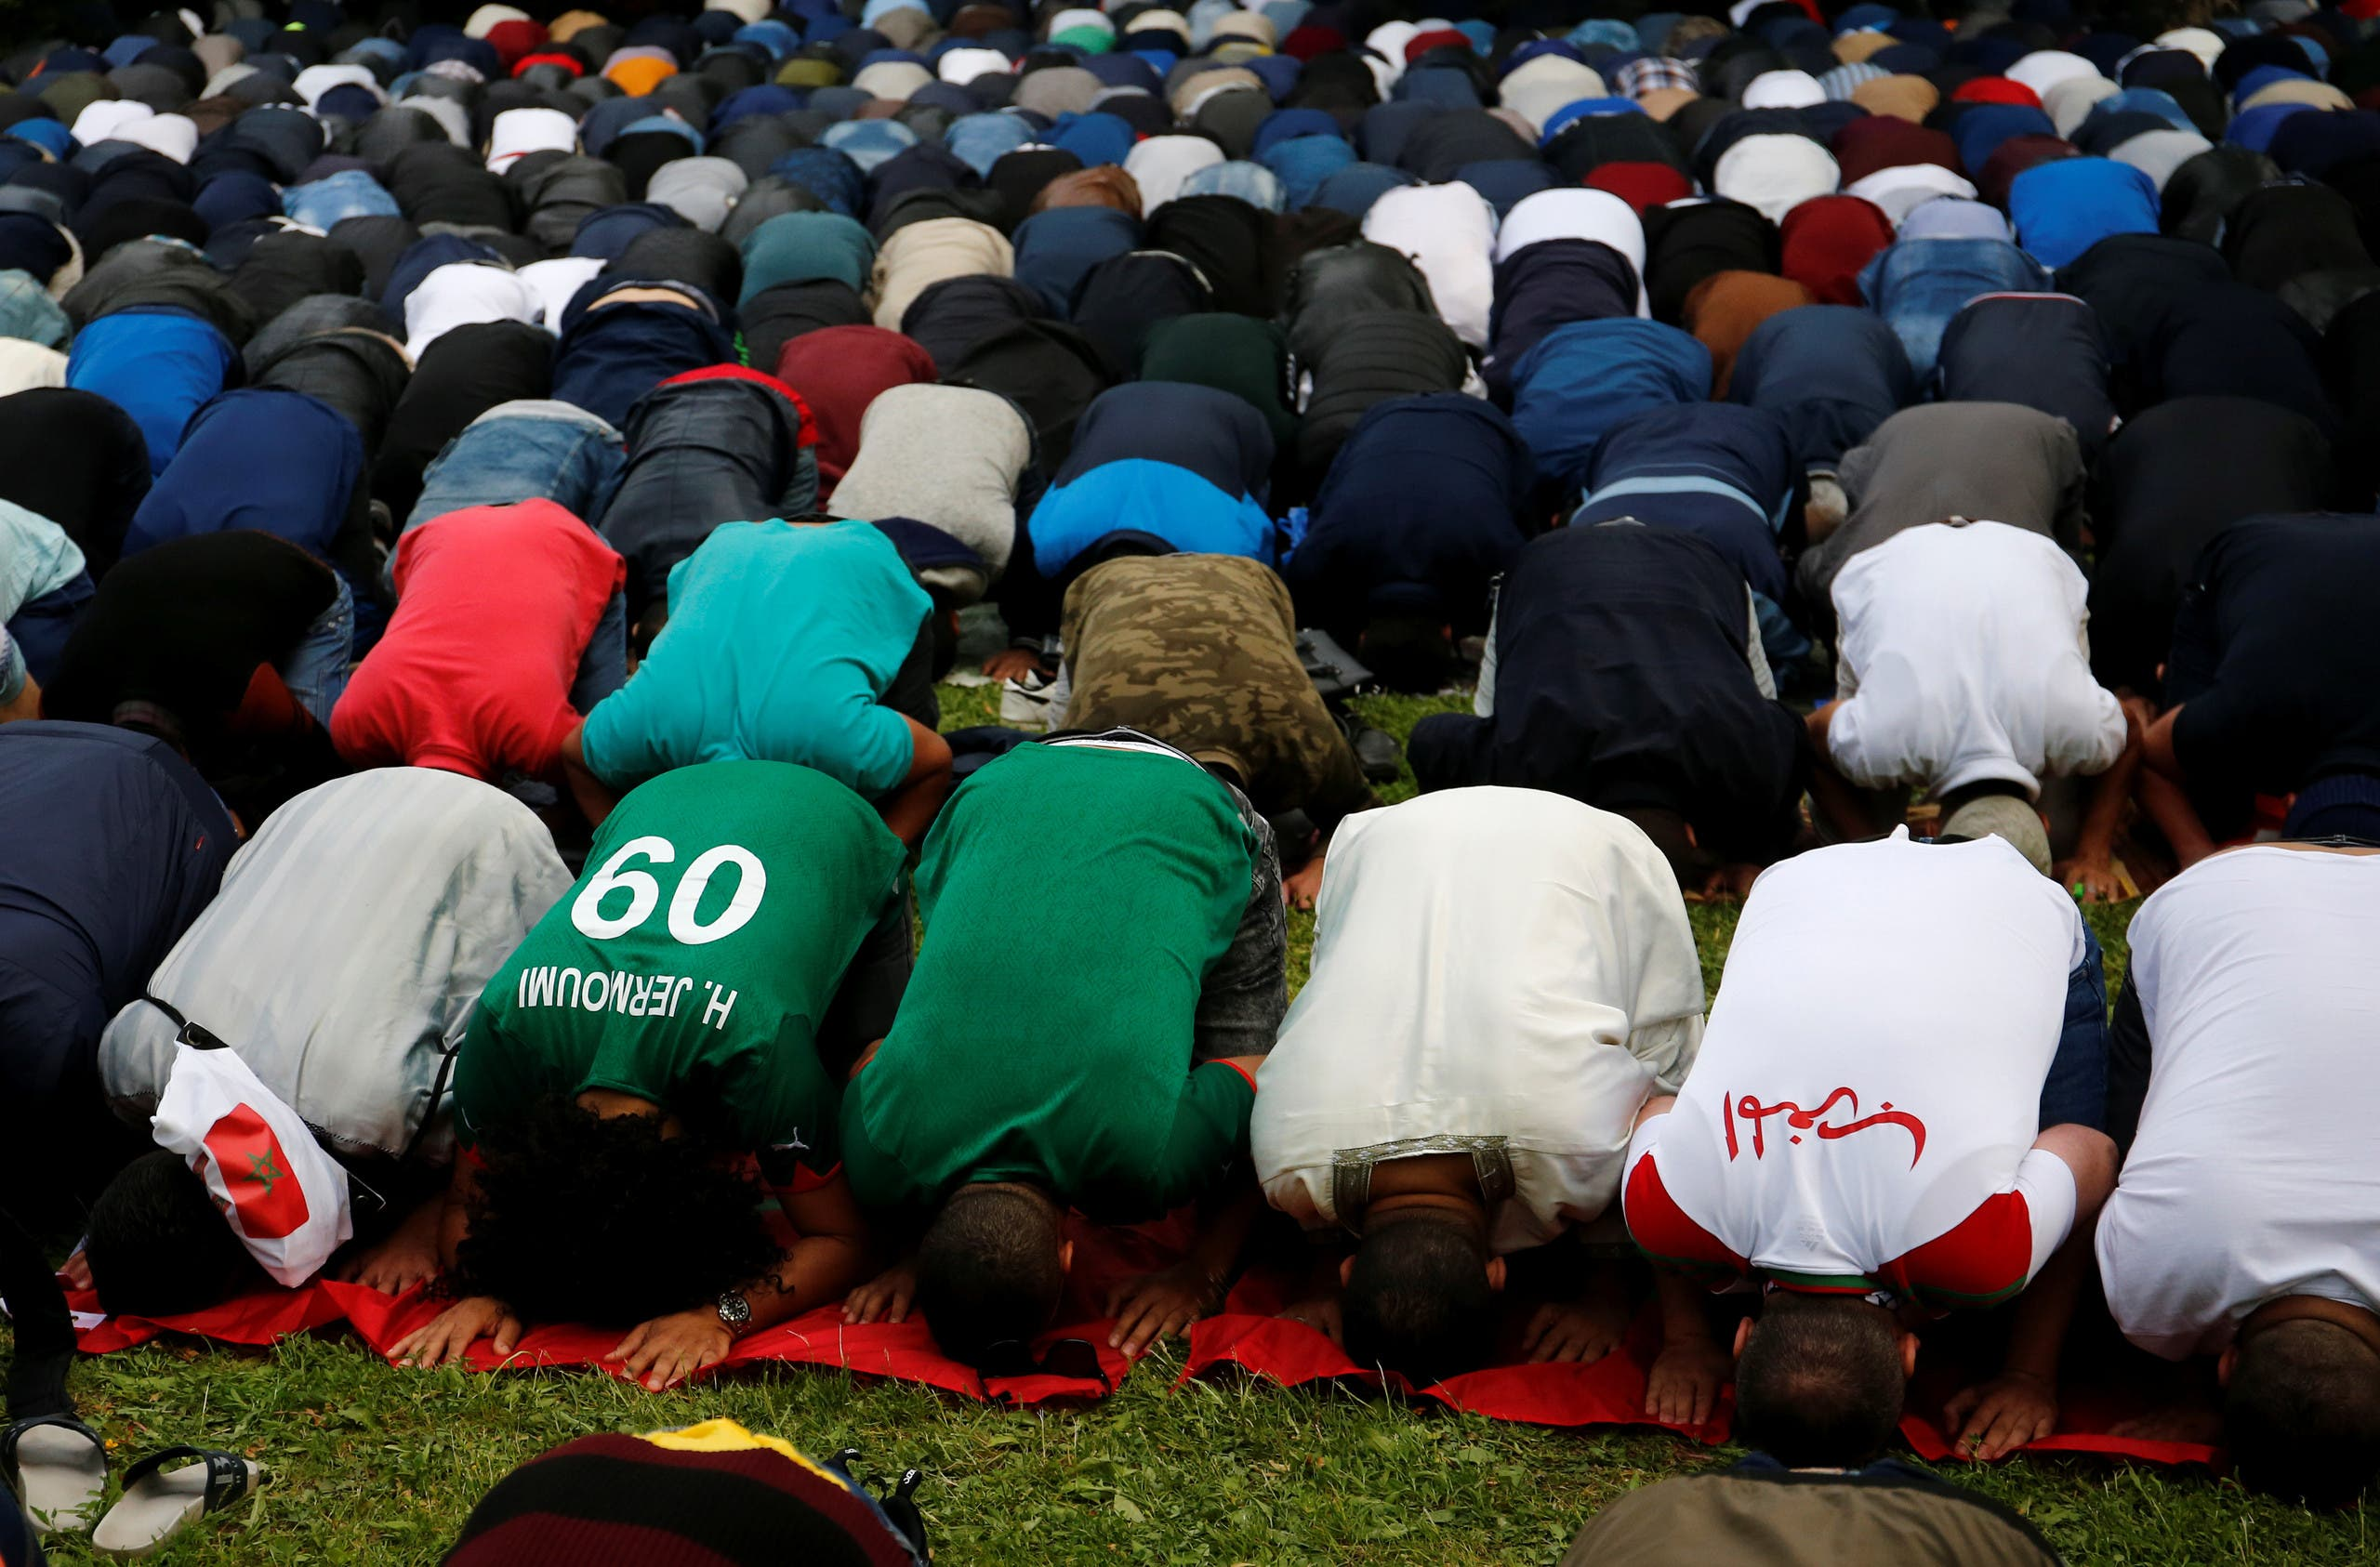 Muslims, including supporters of national soccer teams, attend an Eid al-Fitr mass prayer. (Reuters)